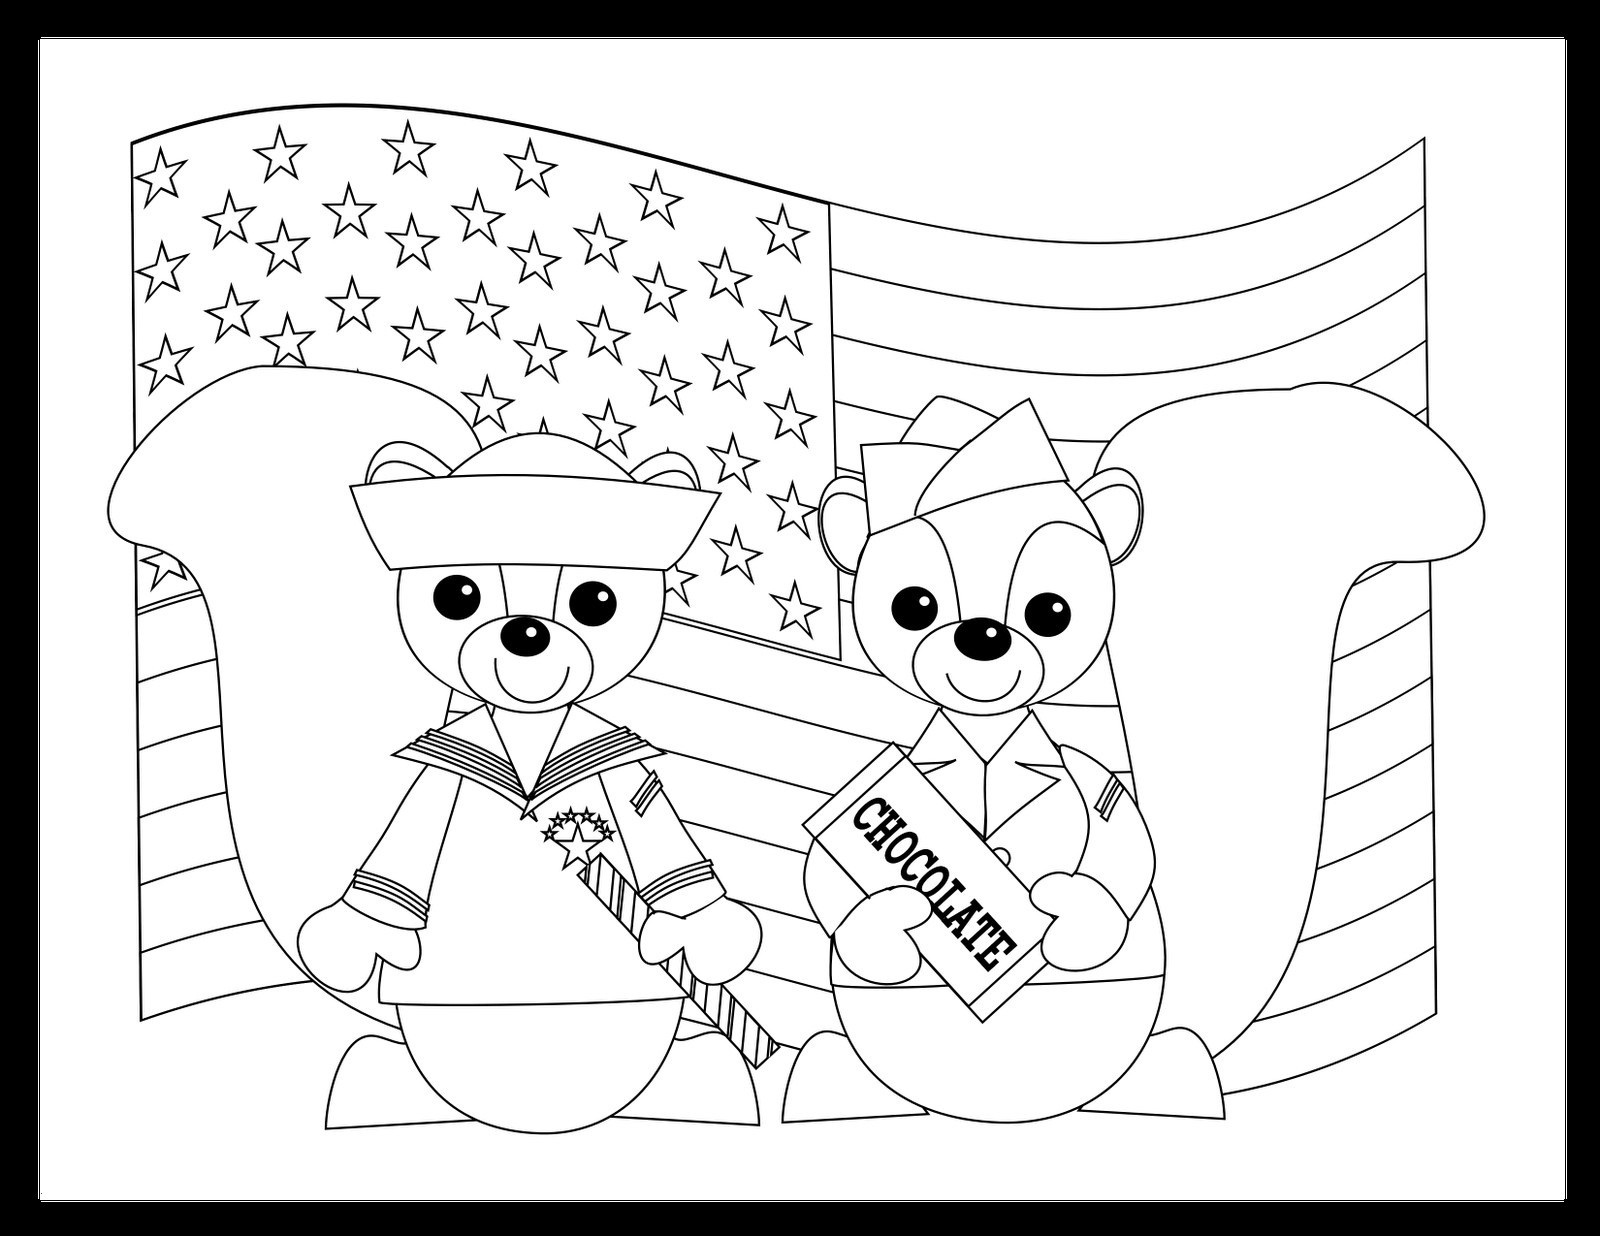 Coloring Pages : Extraordinary Happyrans Dayloring Pages Photo - Veterans Day Free Printable Cards